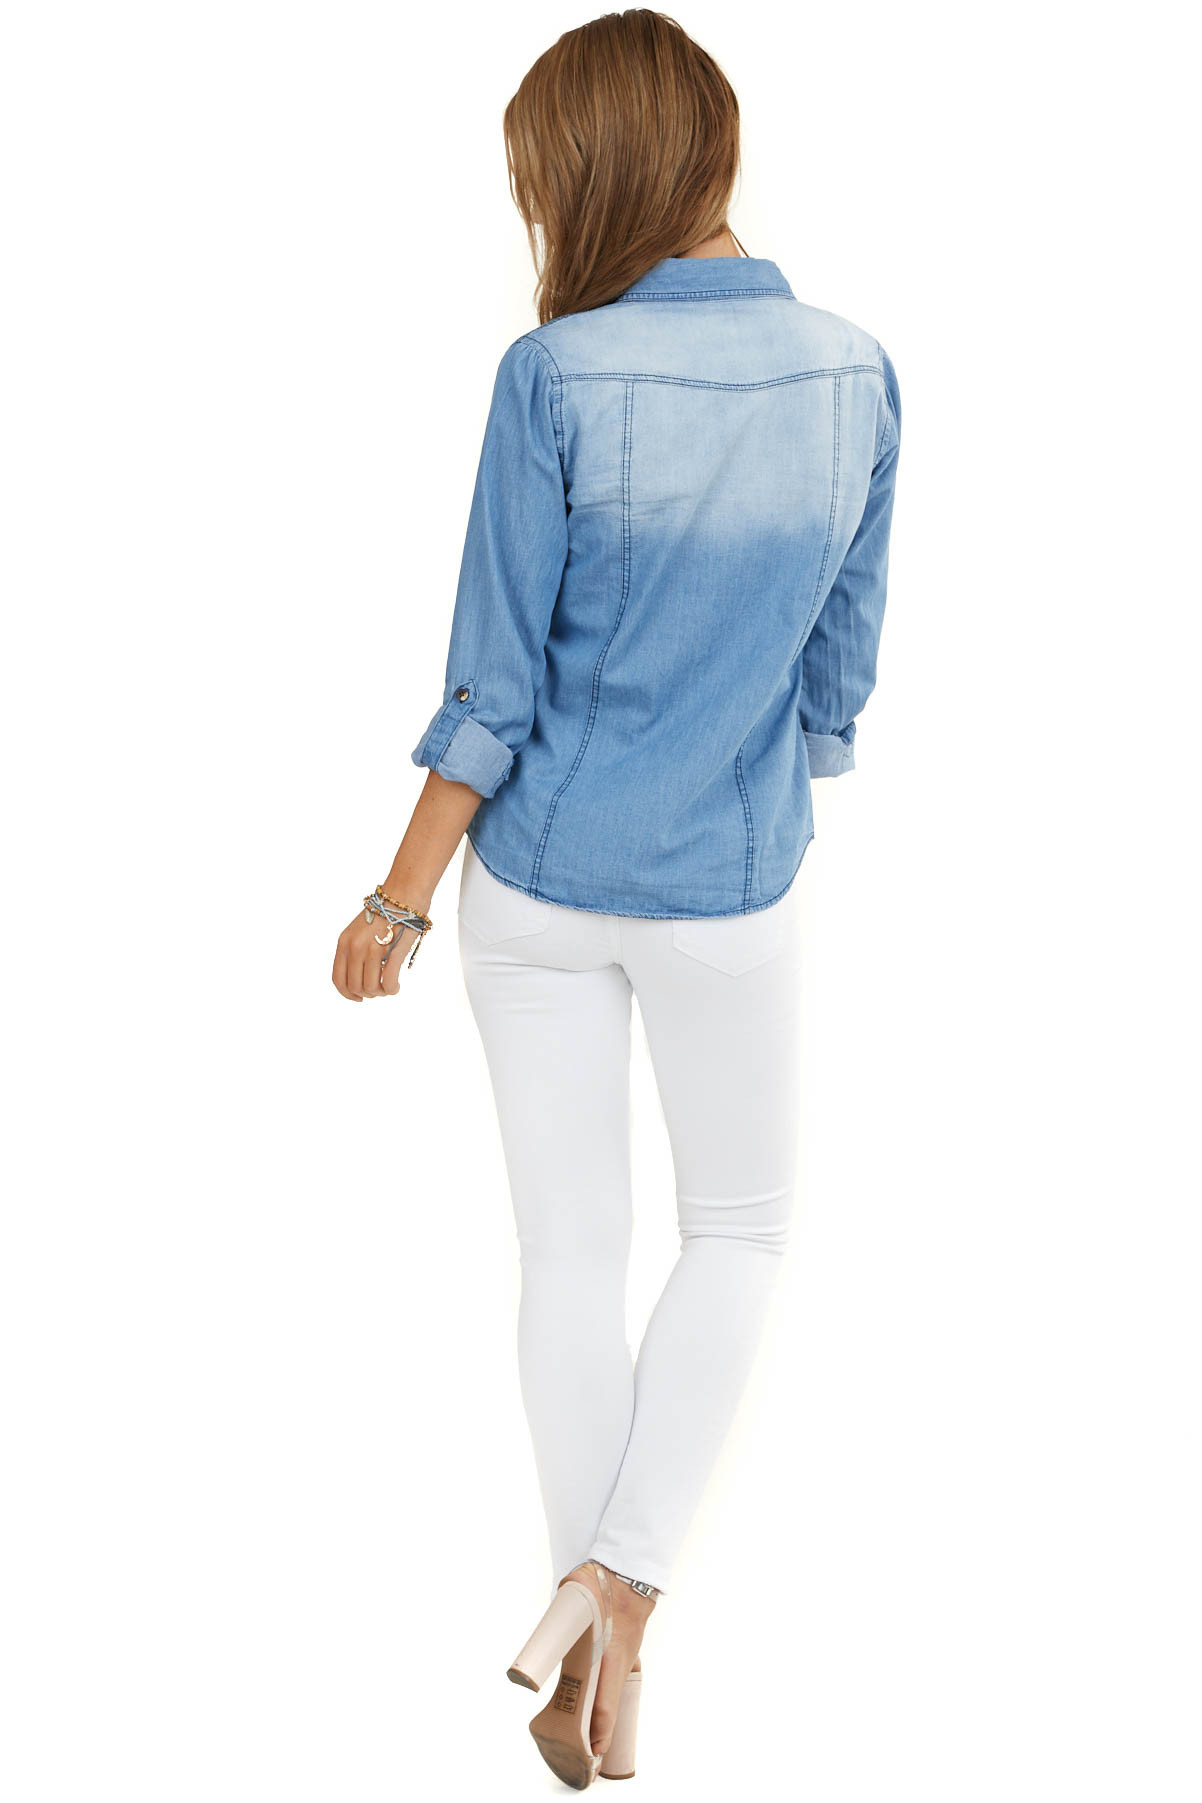 Light Wash Blue Denim Button Up Top with Chest Pockets